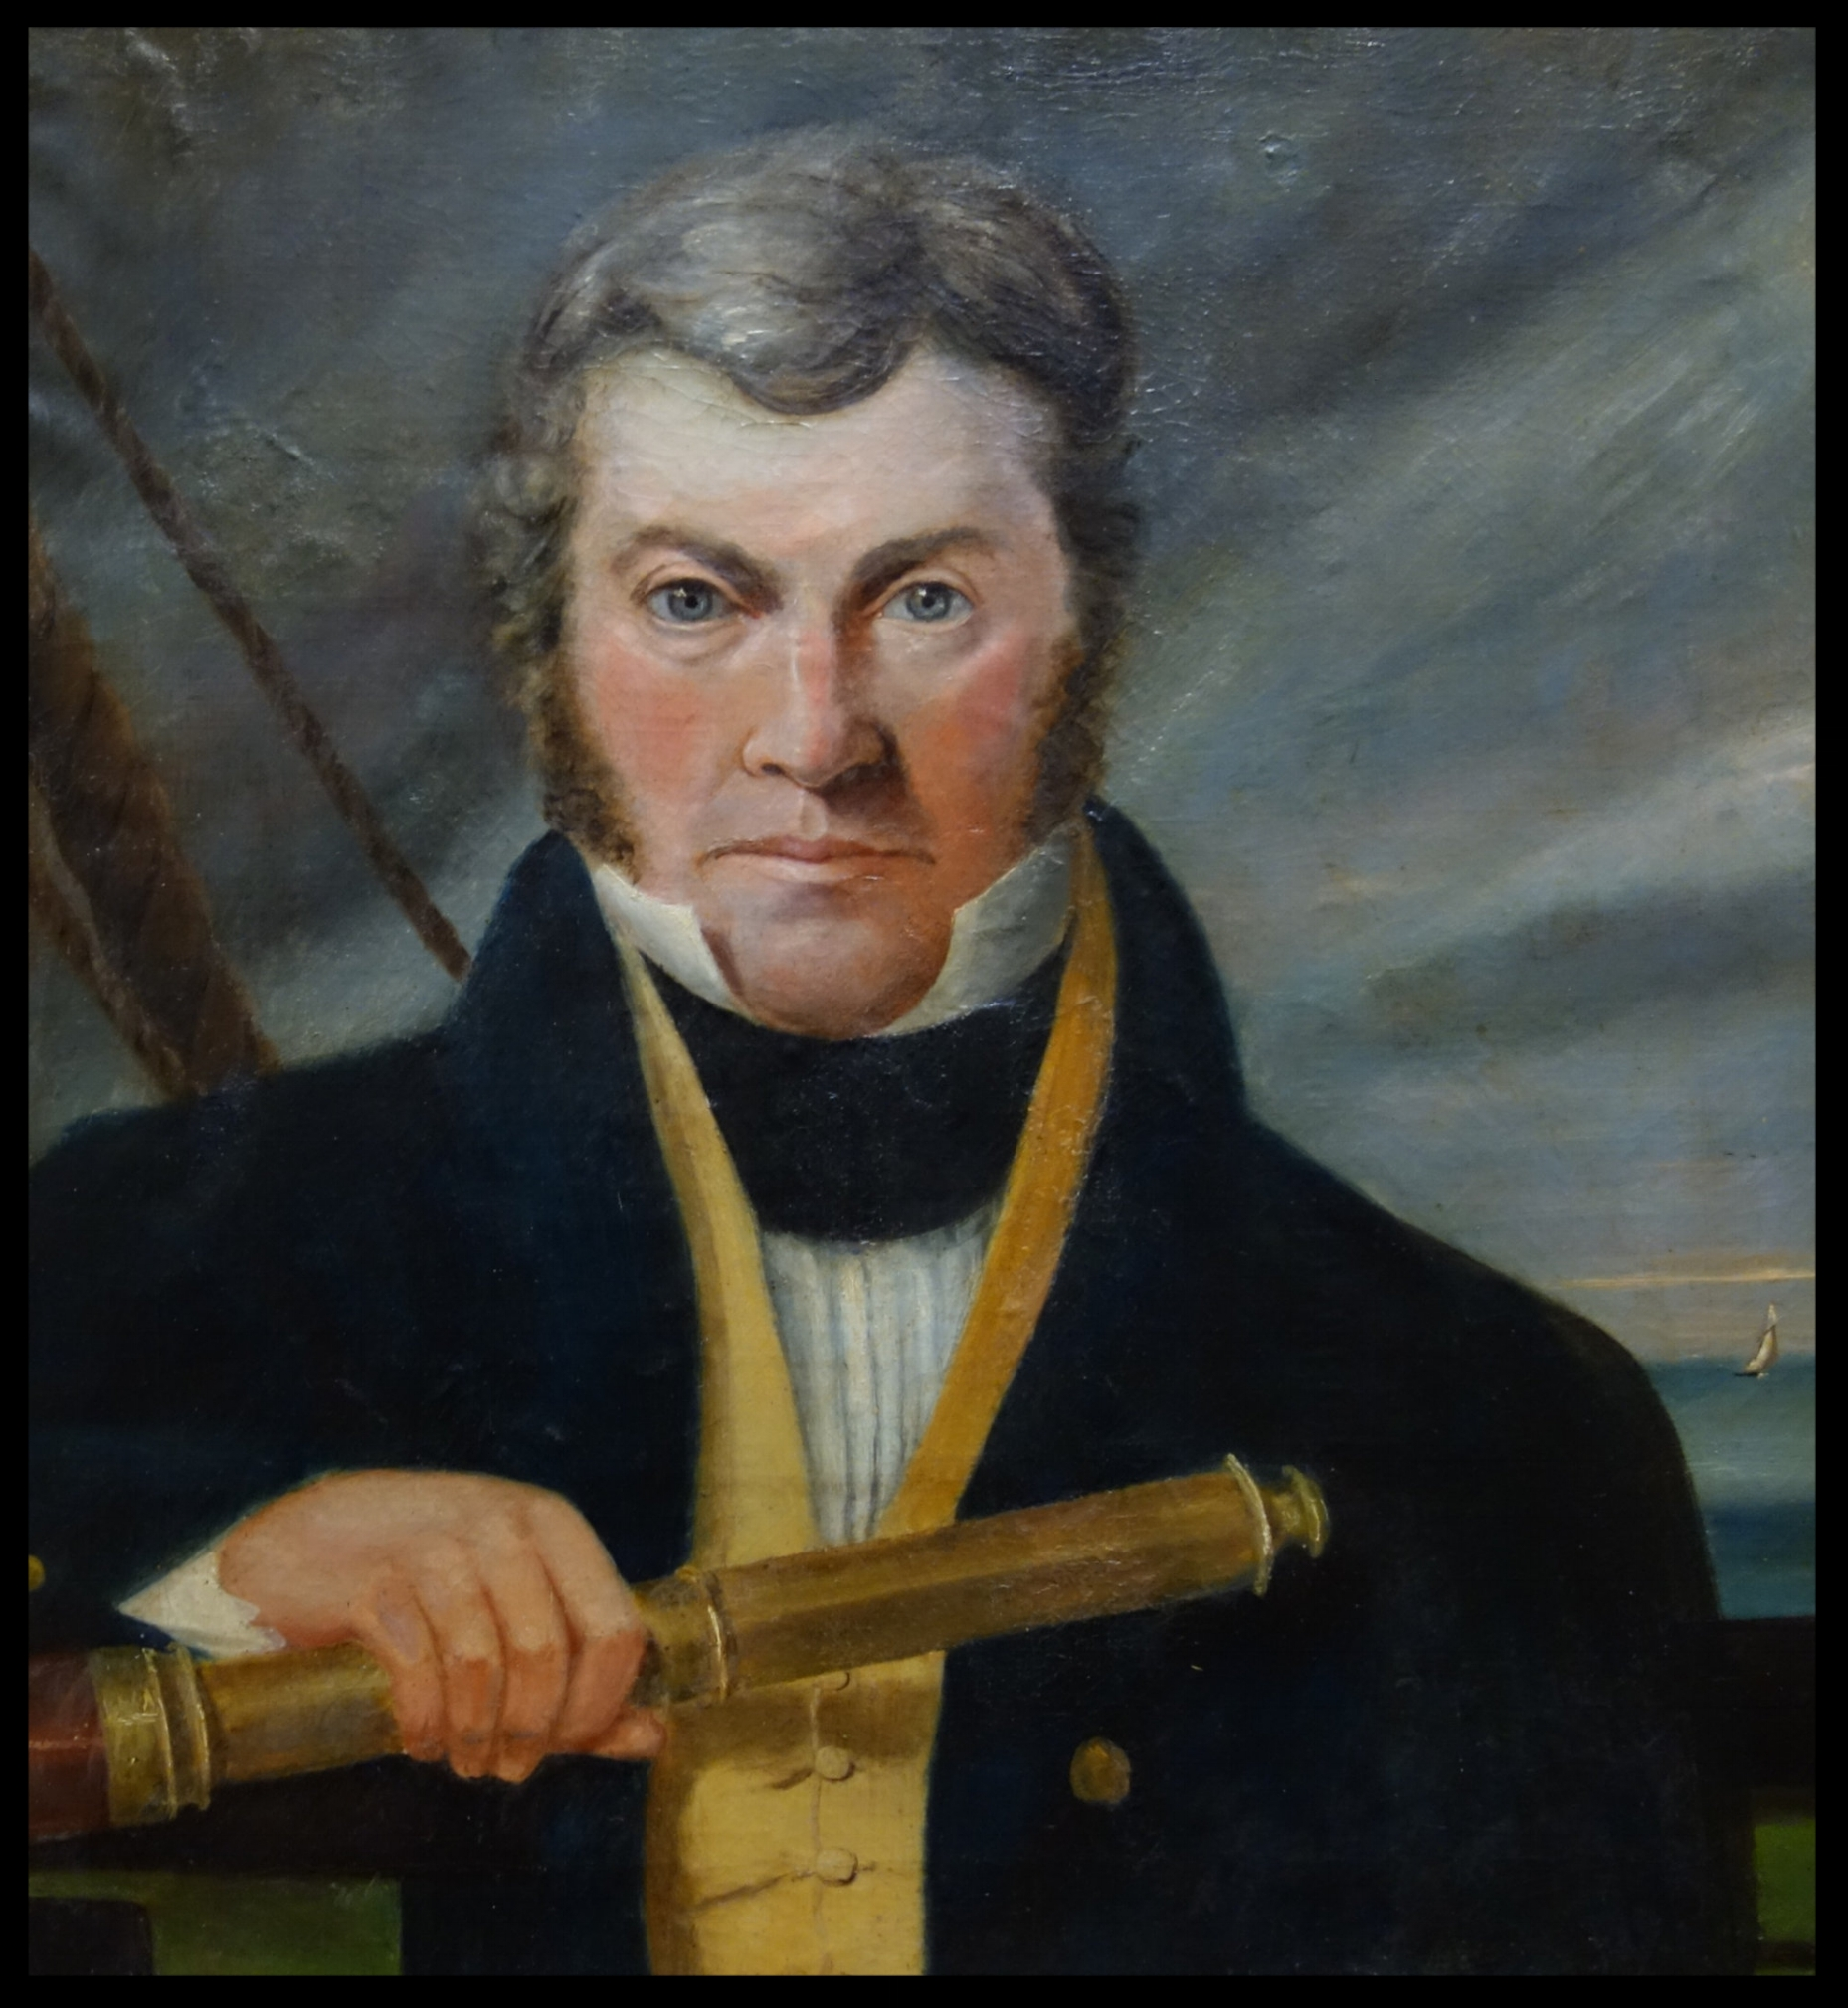 Portrait of Captain William Kinghorne by T.J. Lempriere, 1834, oil on canvas. National Portrait Gallery, Canberra. Purchased with funds provided by The Ian Potter Foundation 2007.